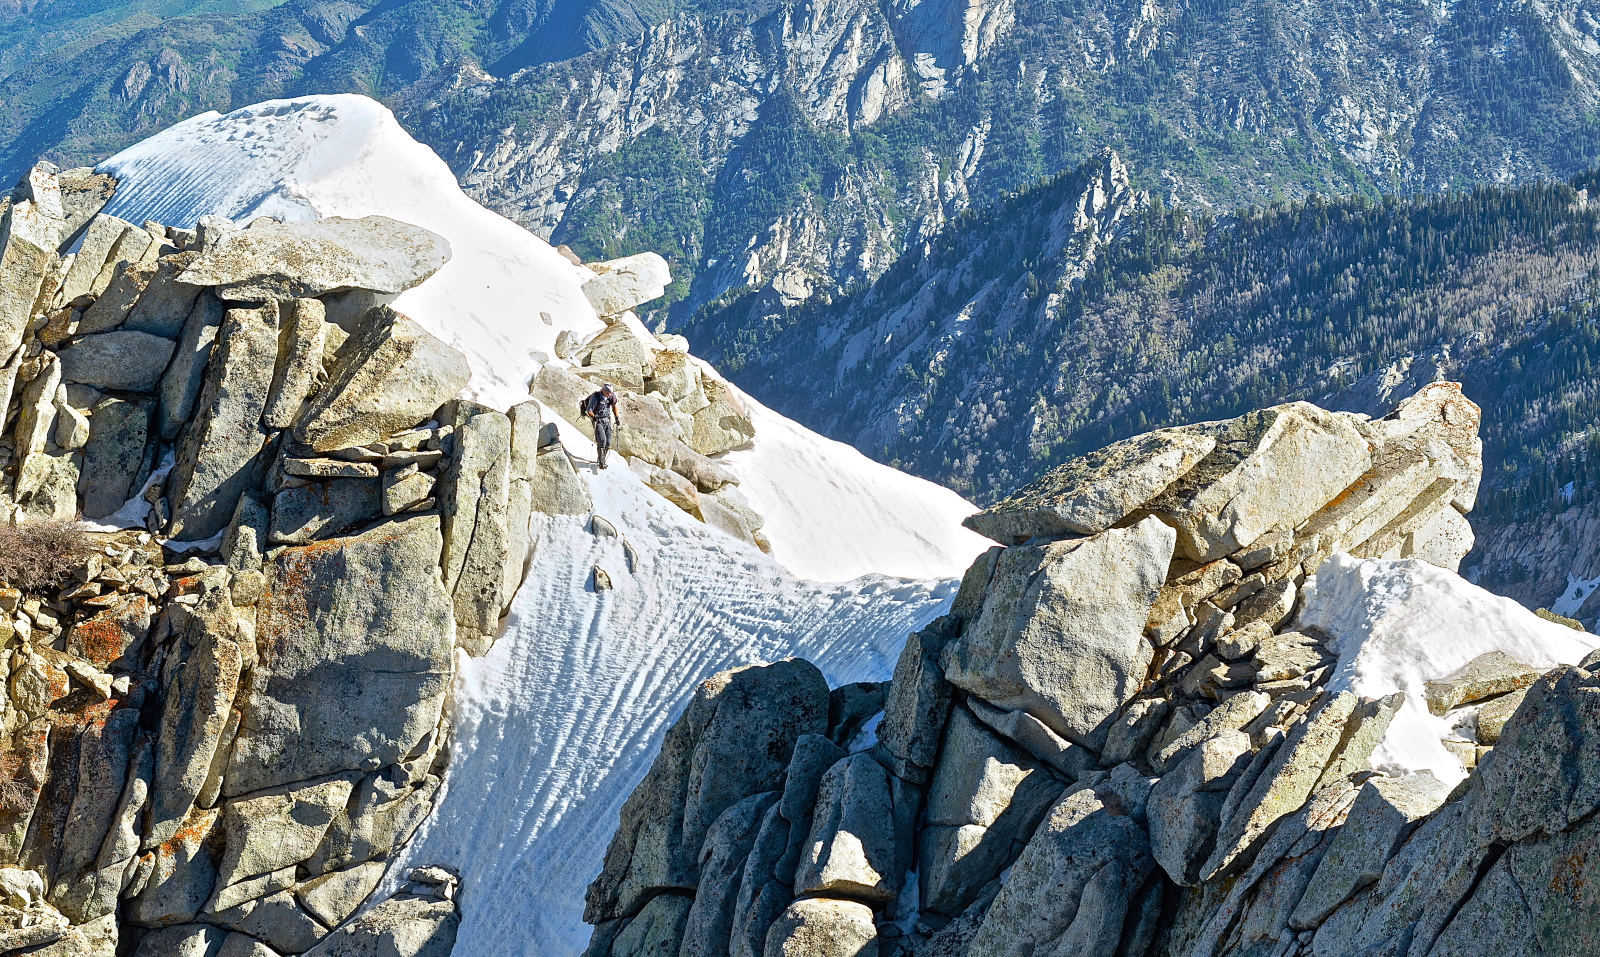 Heading out over the crux, Lone Peak summit ridge.